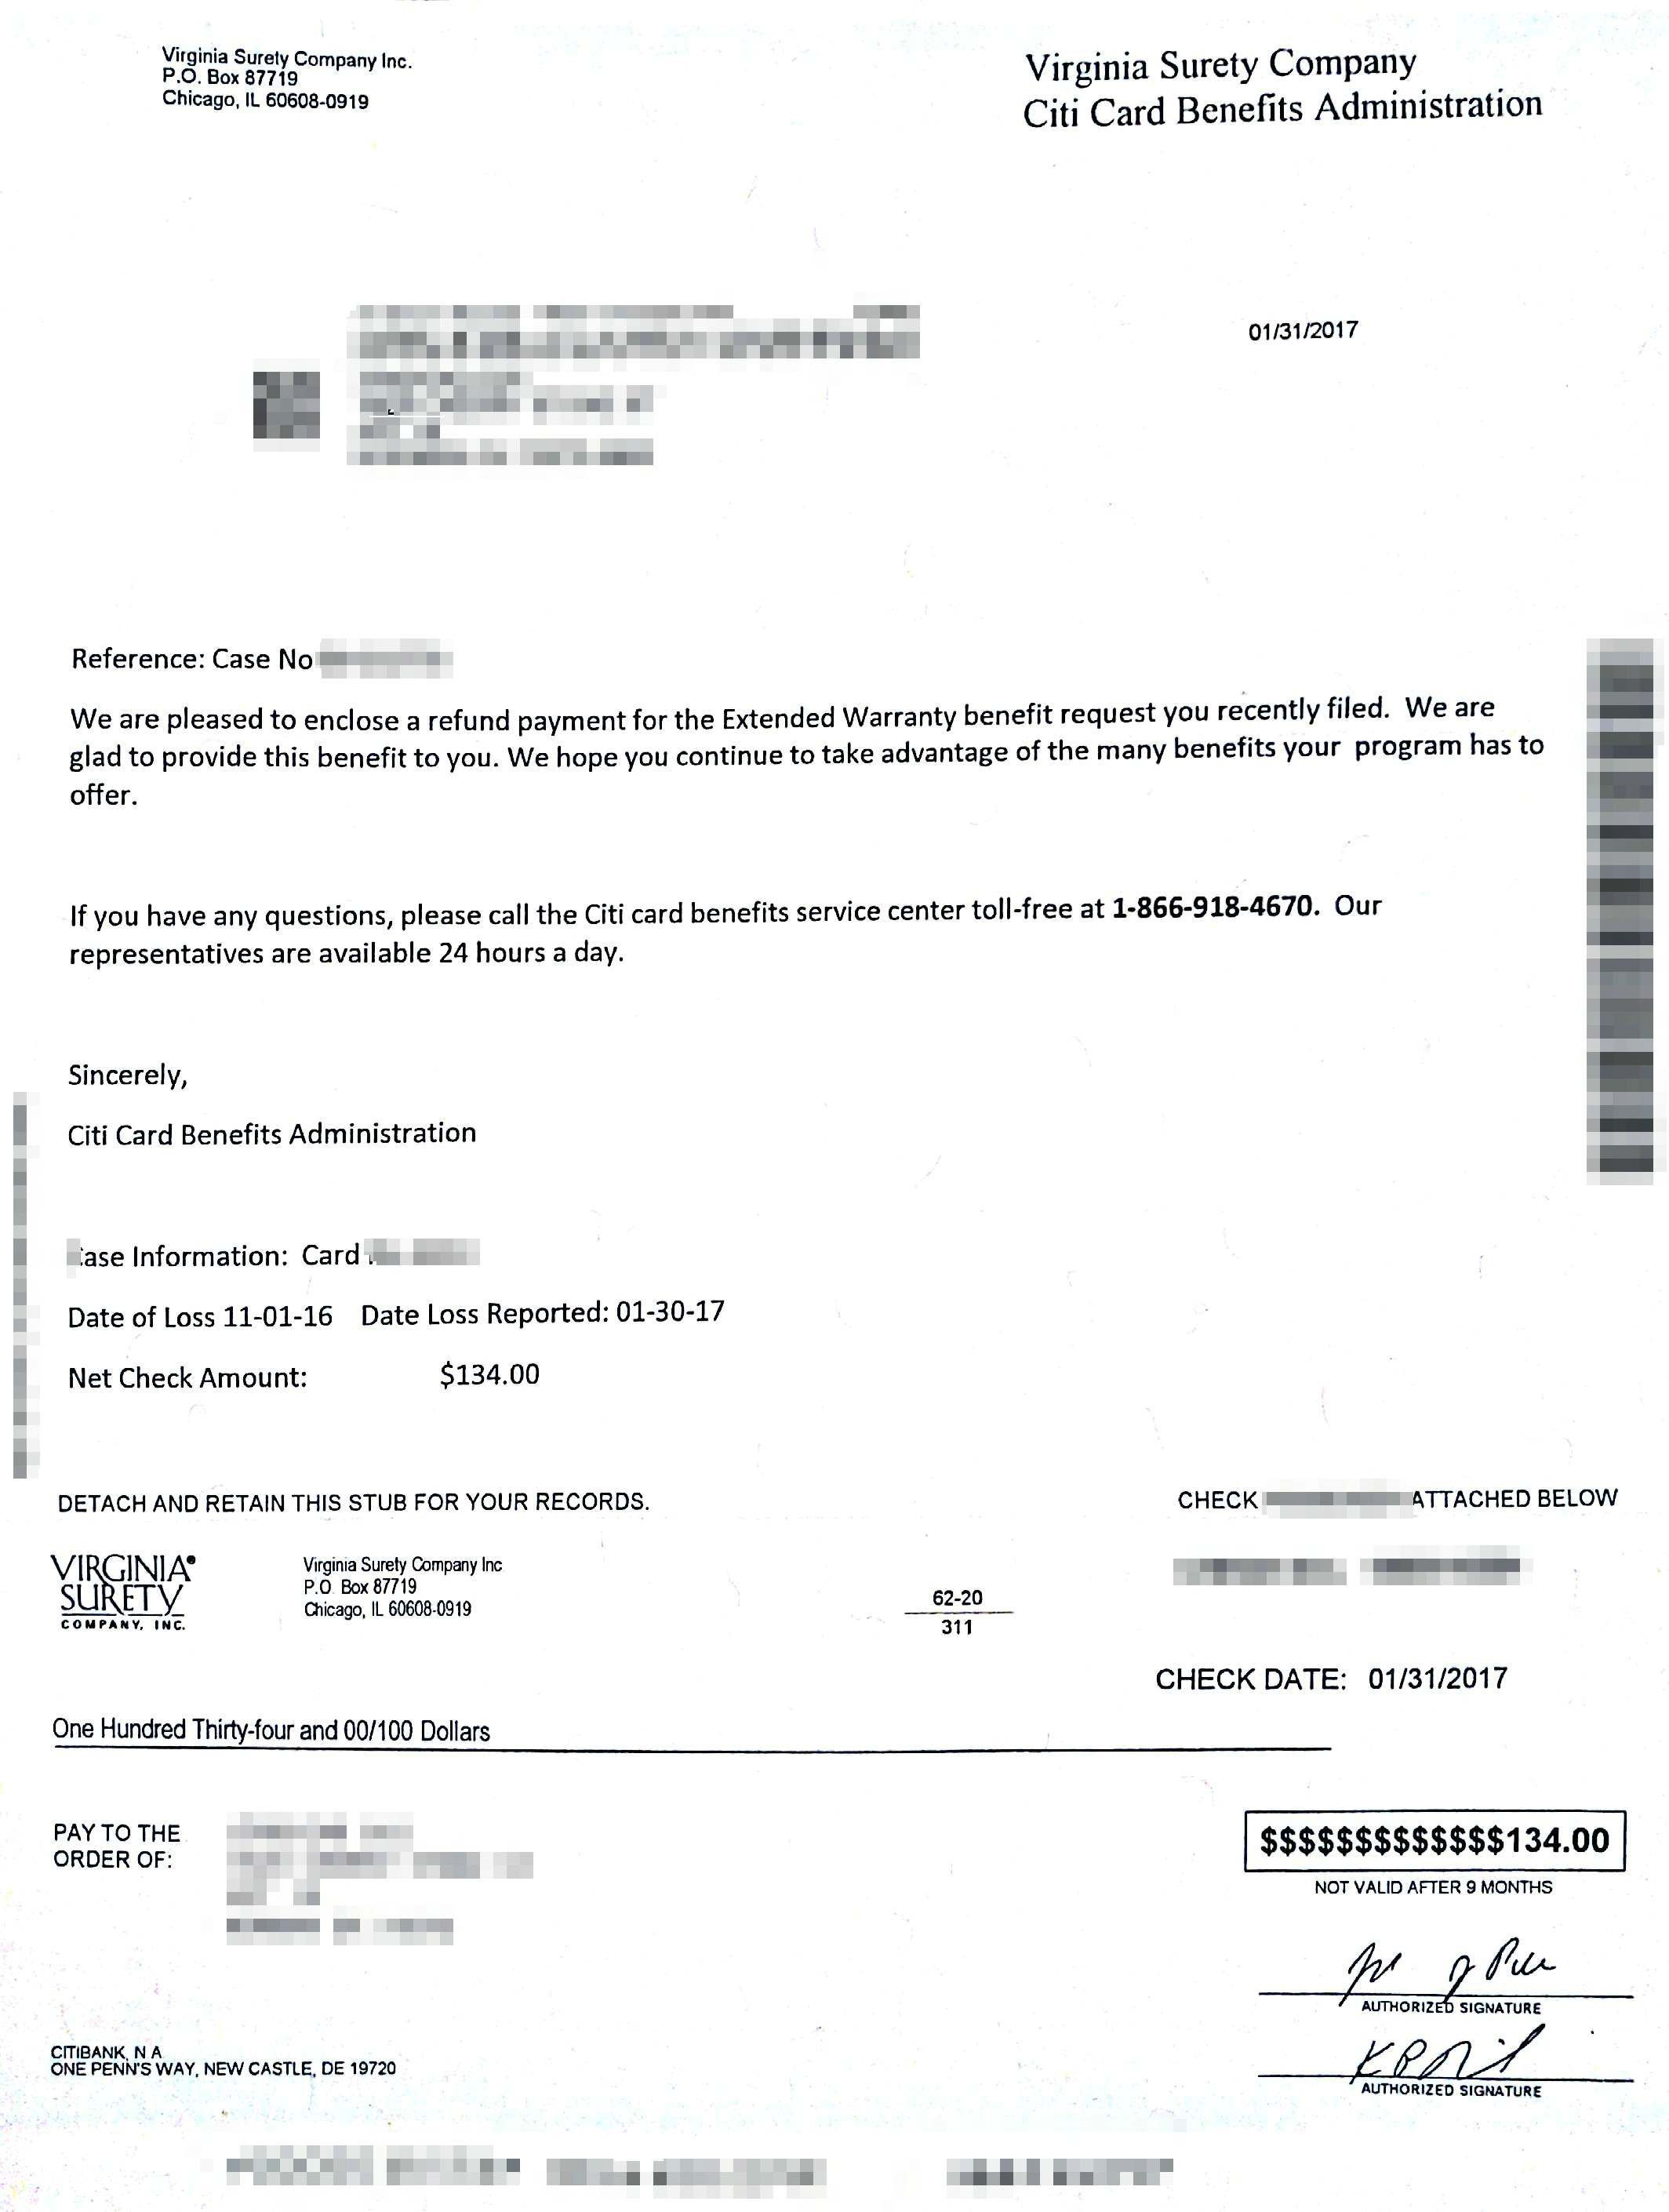 Citi Extended Warranty实战!花旗银行信用卡附带延保!